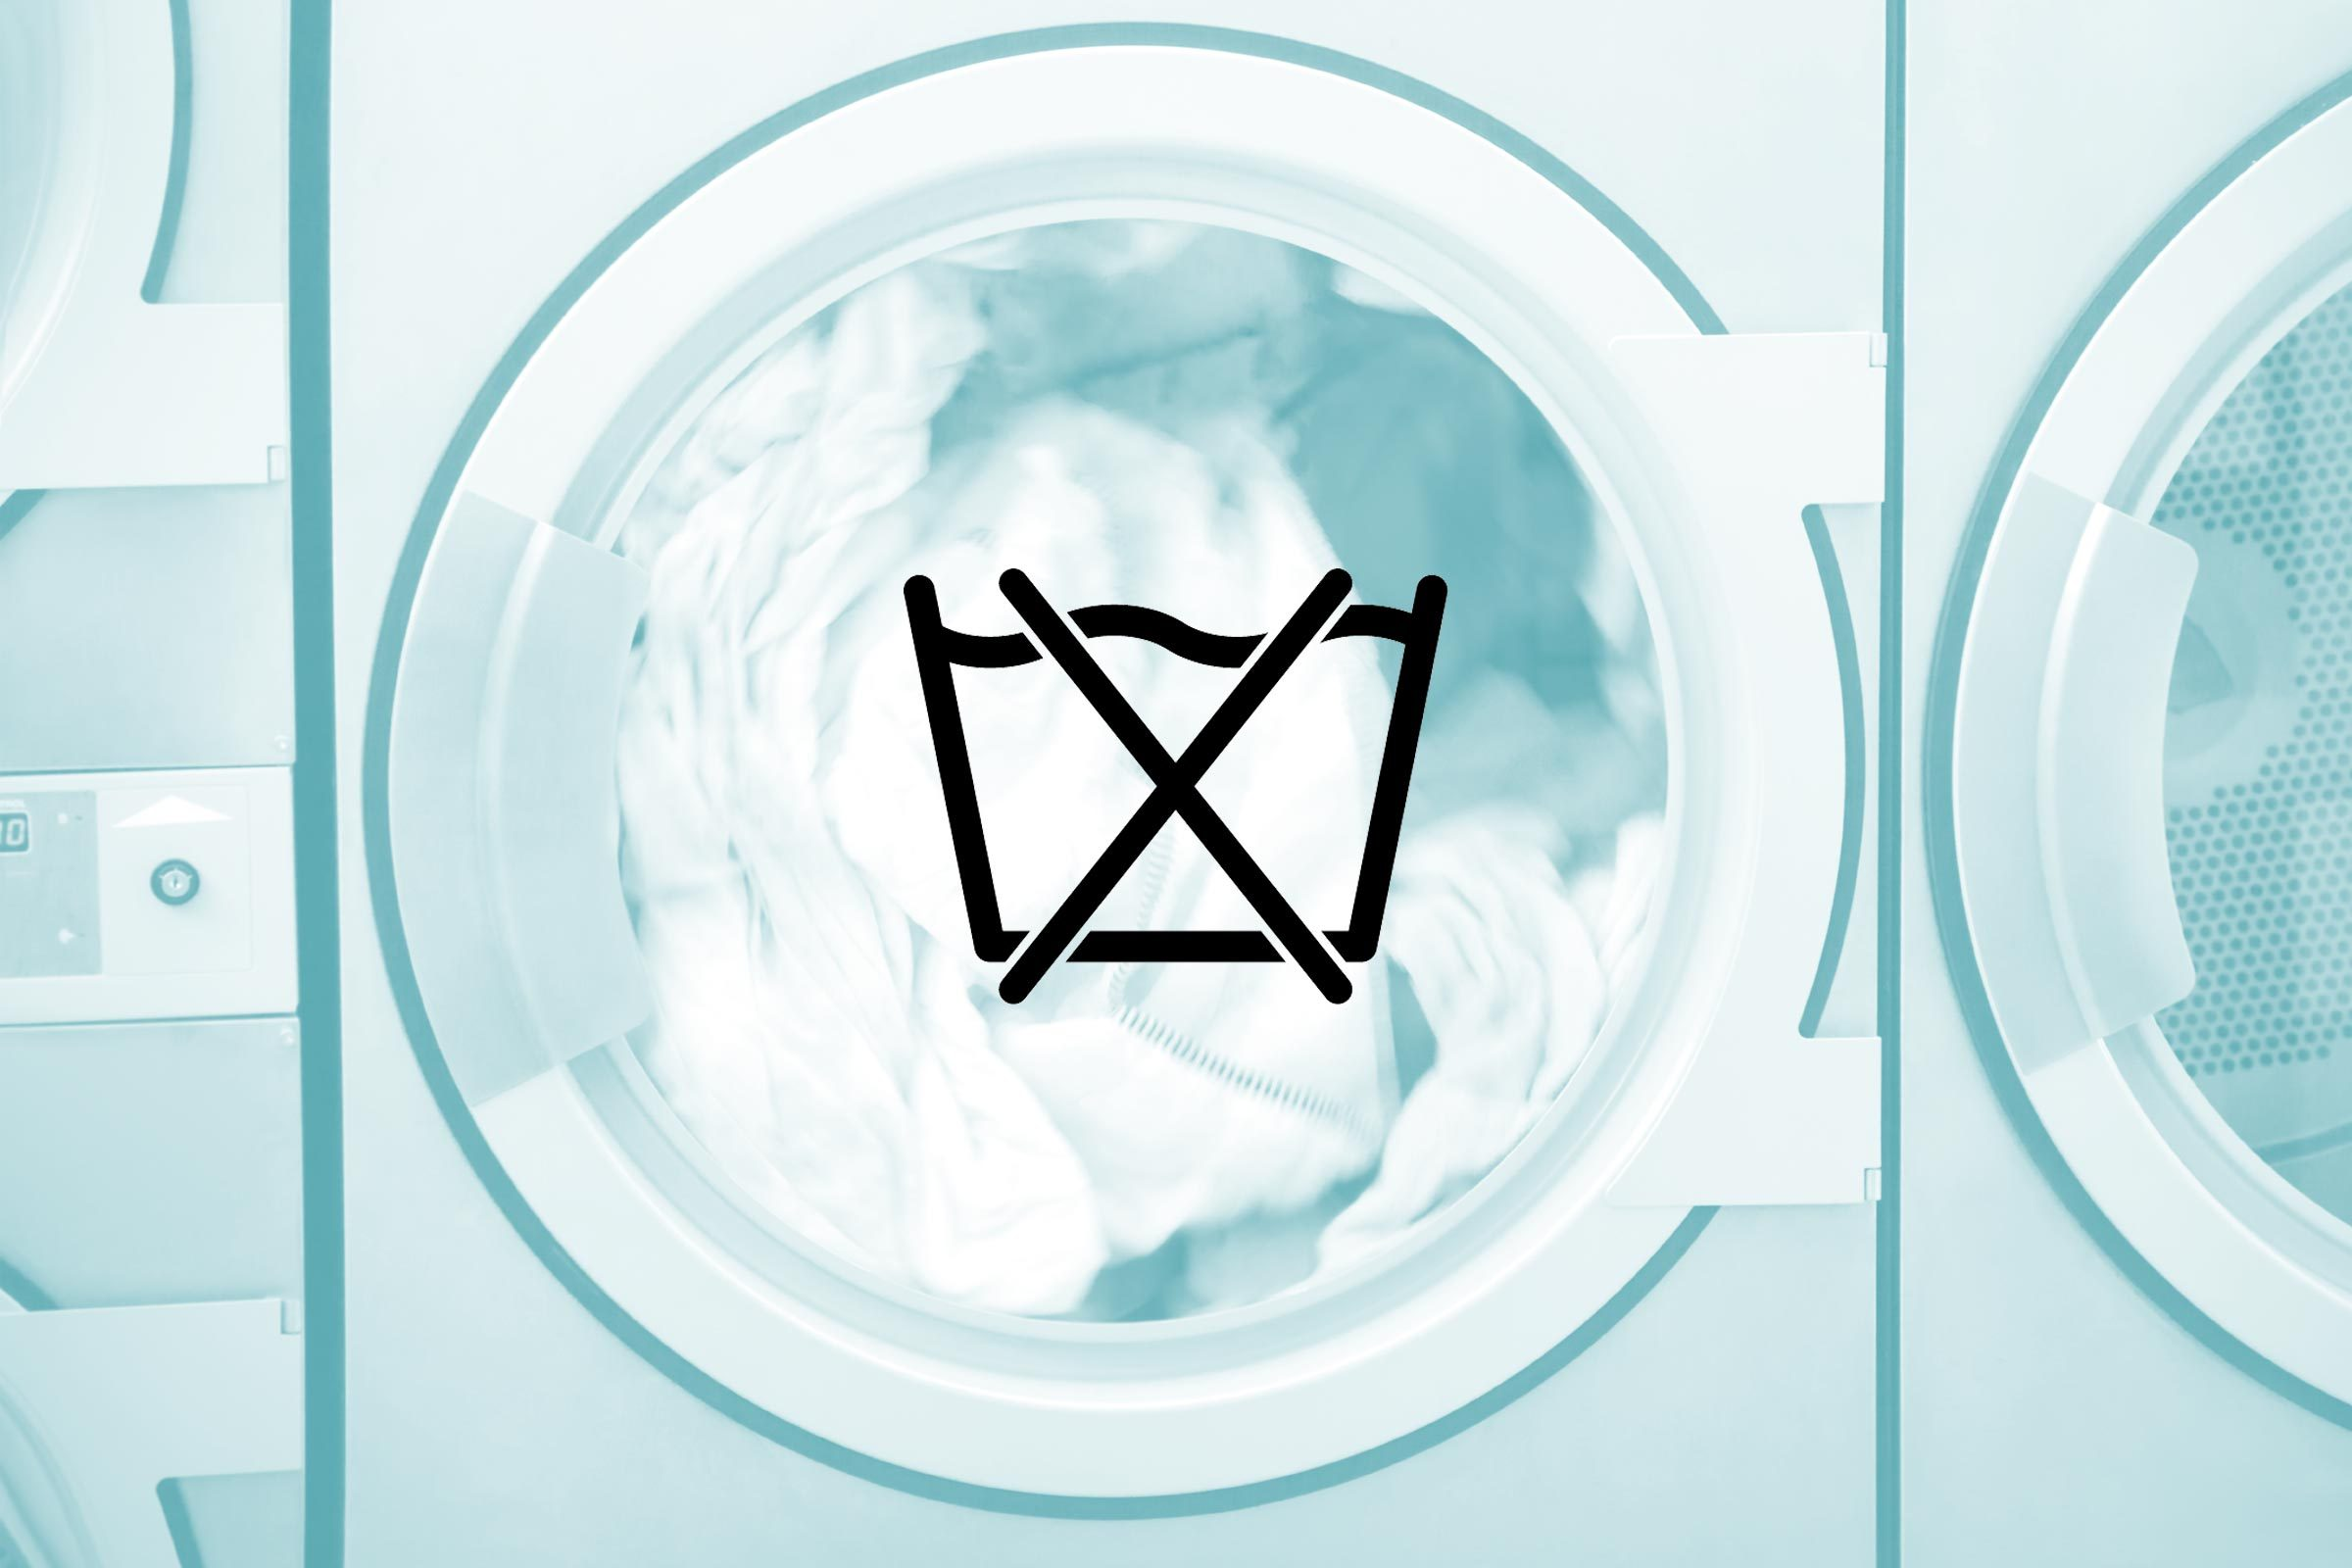 Washing Symbols What Laundry Signs Mean Readers Digest